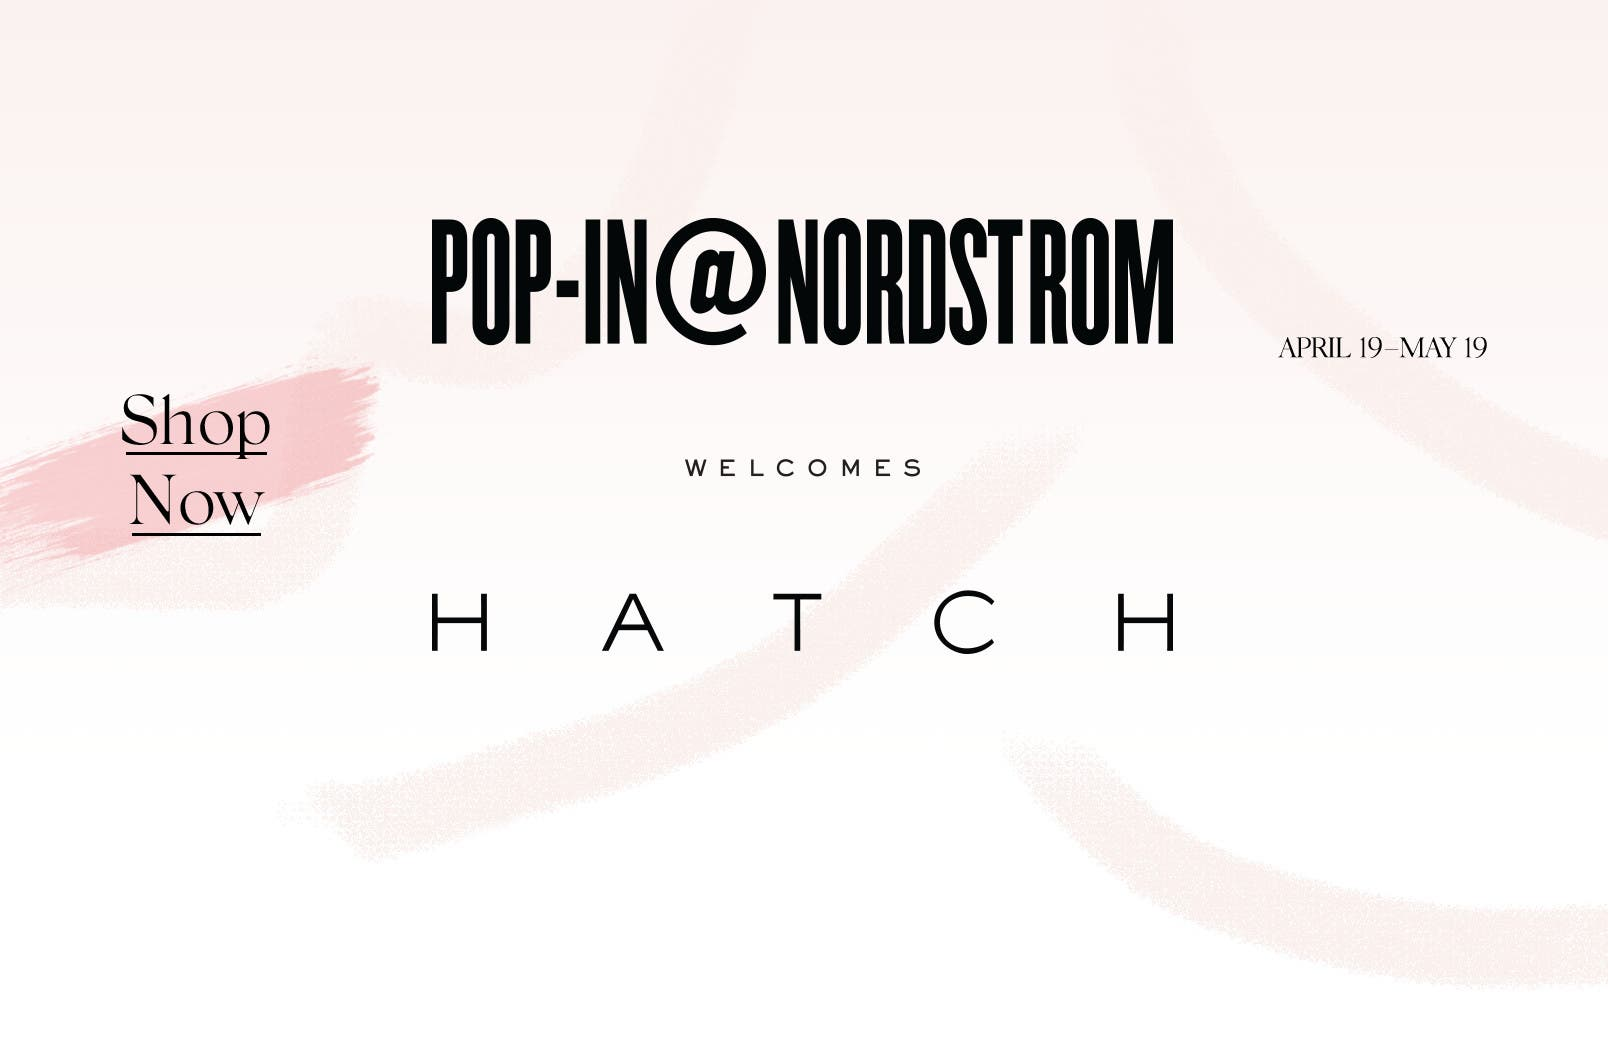 Pop-In@Nordstrom Welcomes HATCH, April 19 to May 19.